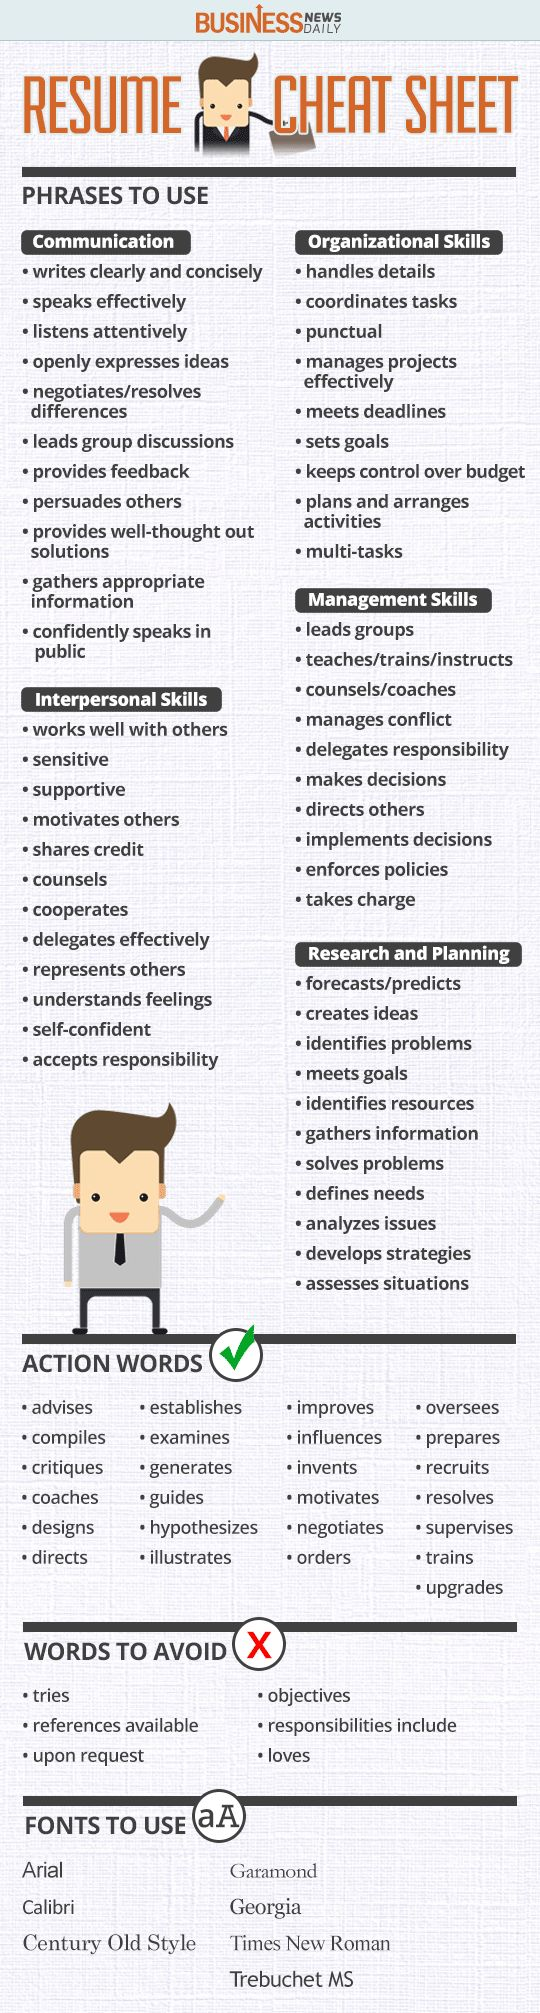 Opposenewapstandardsus  Picturesque  Ideas About Resume On Pinterest  Cv Format Resume Cv And  With Fetching Resume Cheat Sheet Infographic Andrews Almost Done With A Complete Unit On Employment Which With Delightful Example Of Resume Objectives Also Best Free Resume Site In Addition Resume Strong Words And Basic Job Resume As Well As Barista Skills Resume Additionally What Is Needed In A Resume From Pinterestcom With Opposenewapstandardsus  Fetching  Ideas About Resume On Pinterest  Cv Format Resume Cv And  With Delightful Resume Cheat Sheet Infographic Andrews Almost Done With A Complete Unit On Employment Which And Picturesque Example Of Resume Objectives Also Best Free Resume Site In Addition Resume Strong Words From Pinterestcom